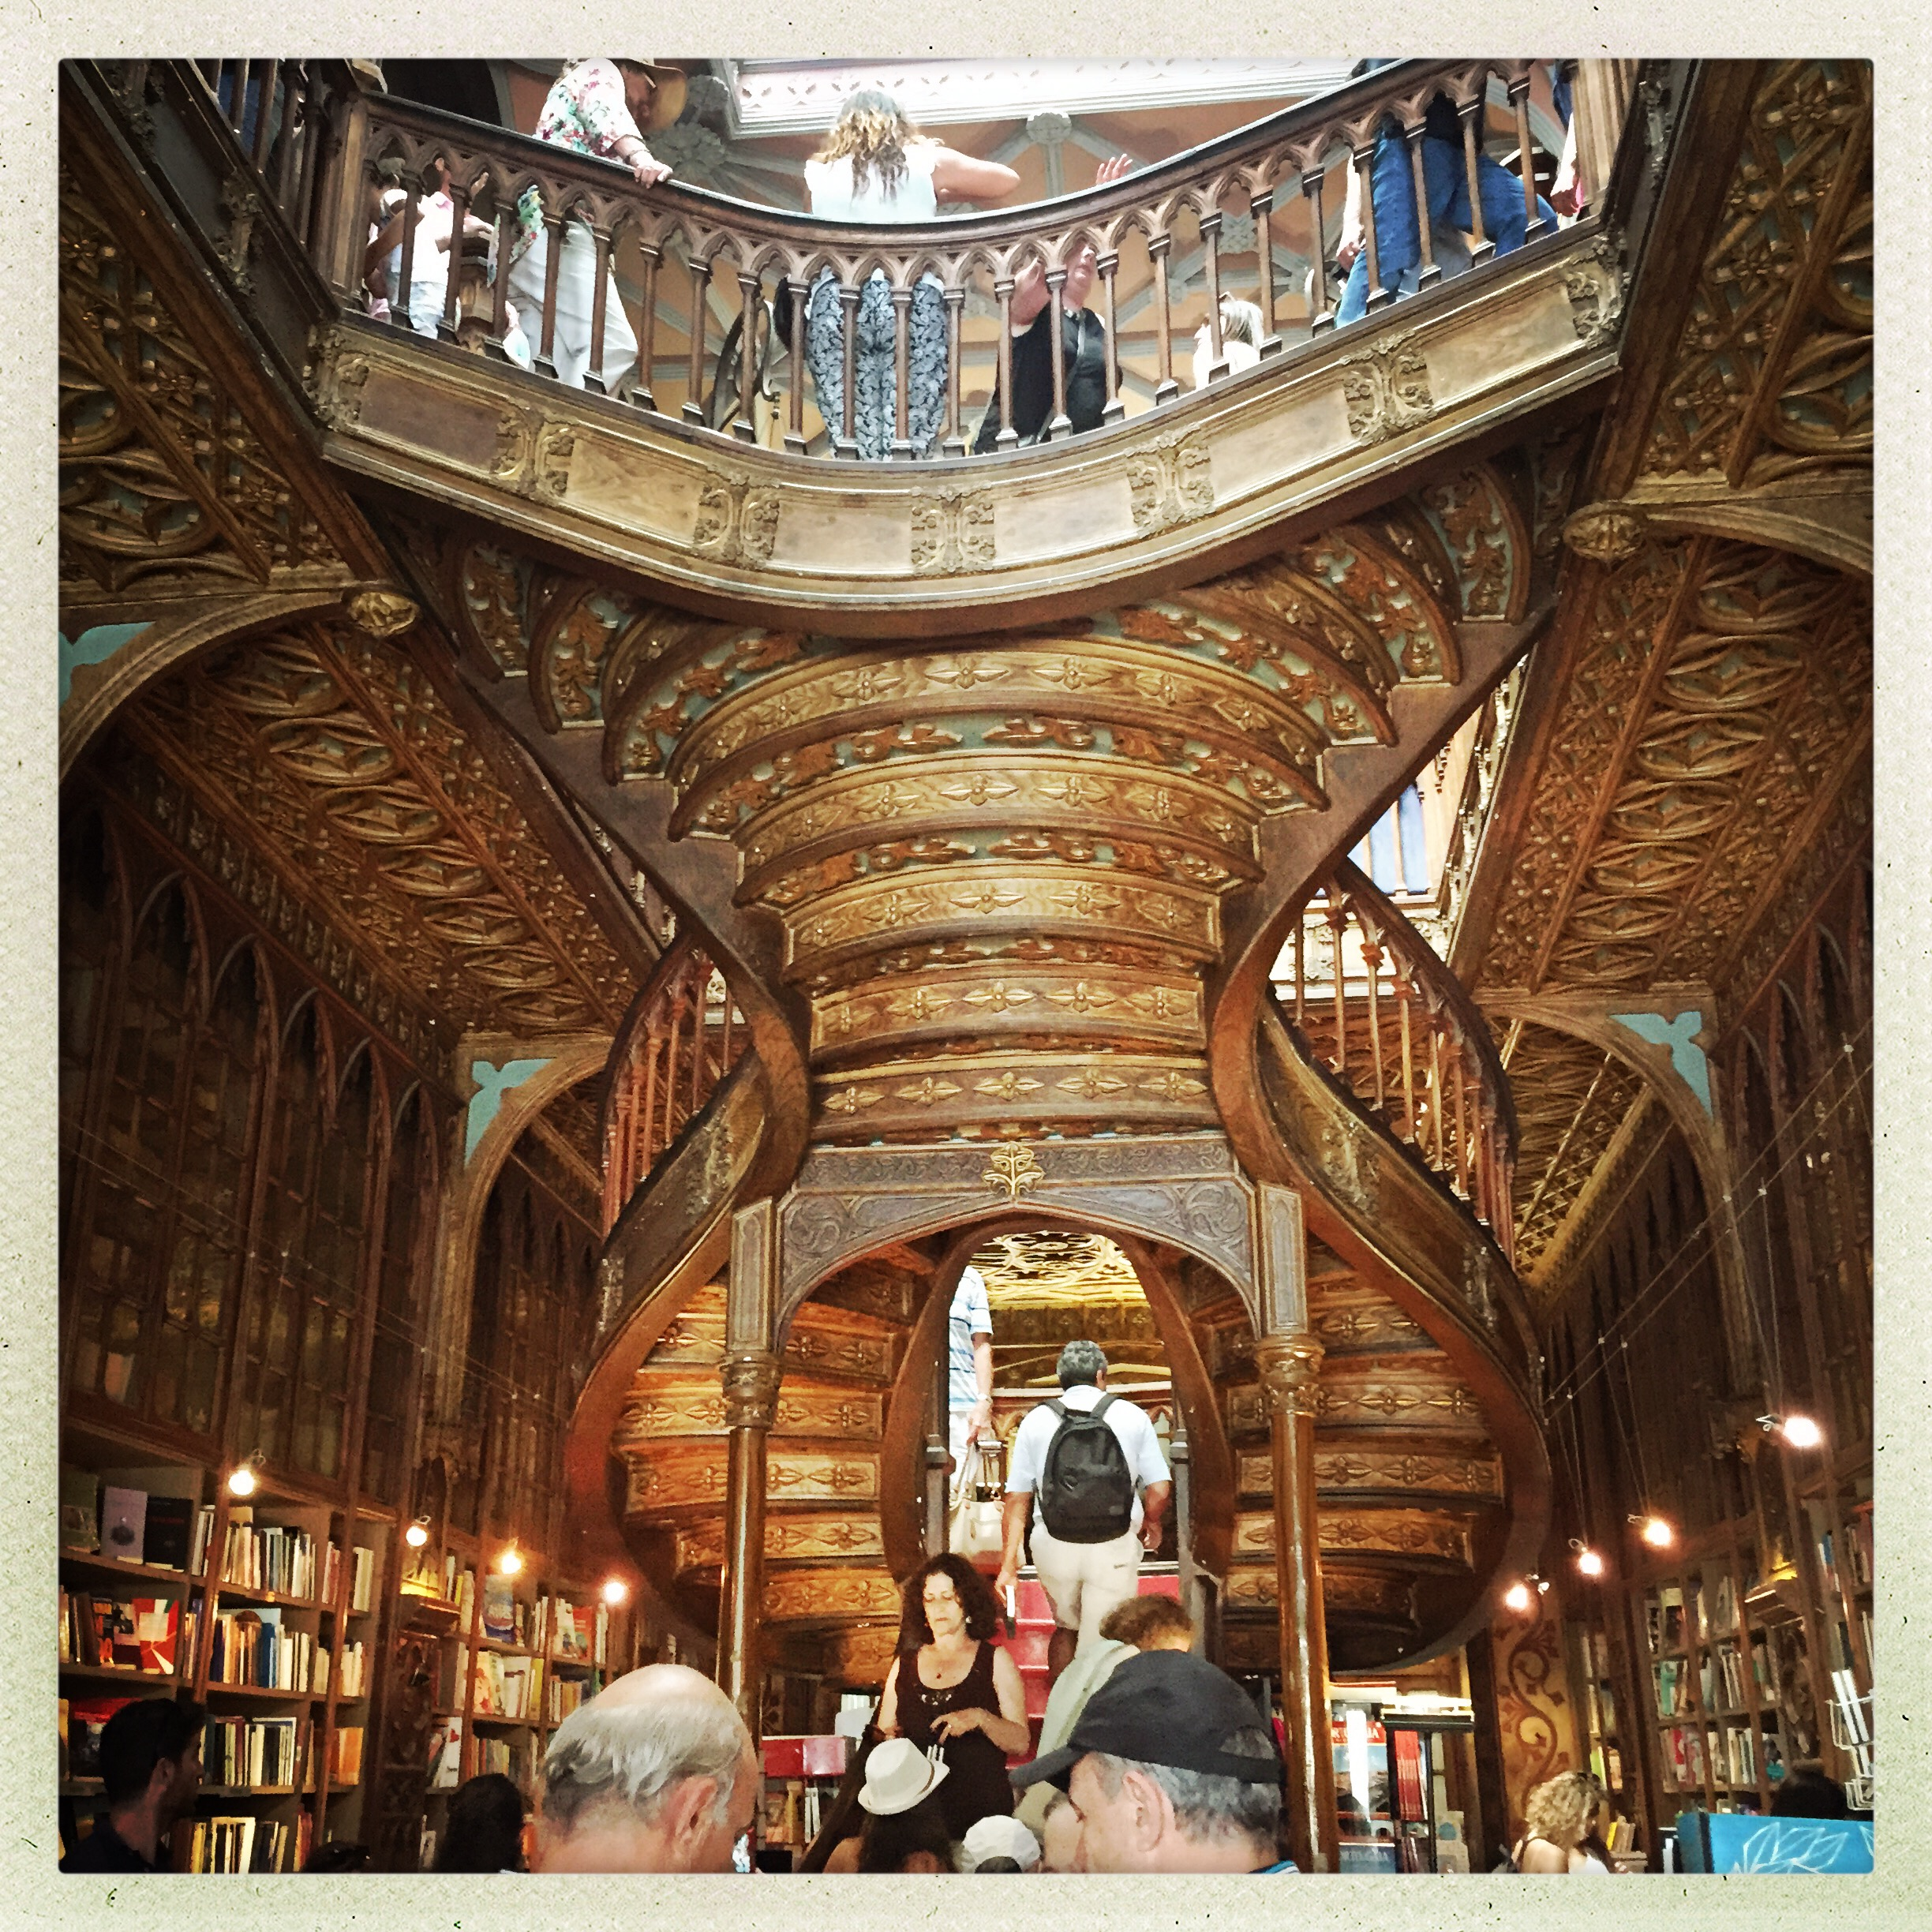 Loved this book store